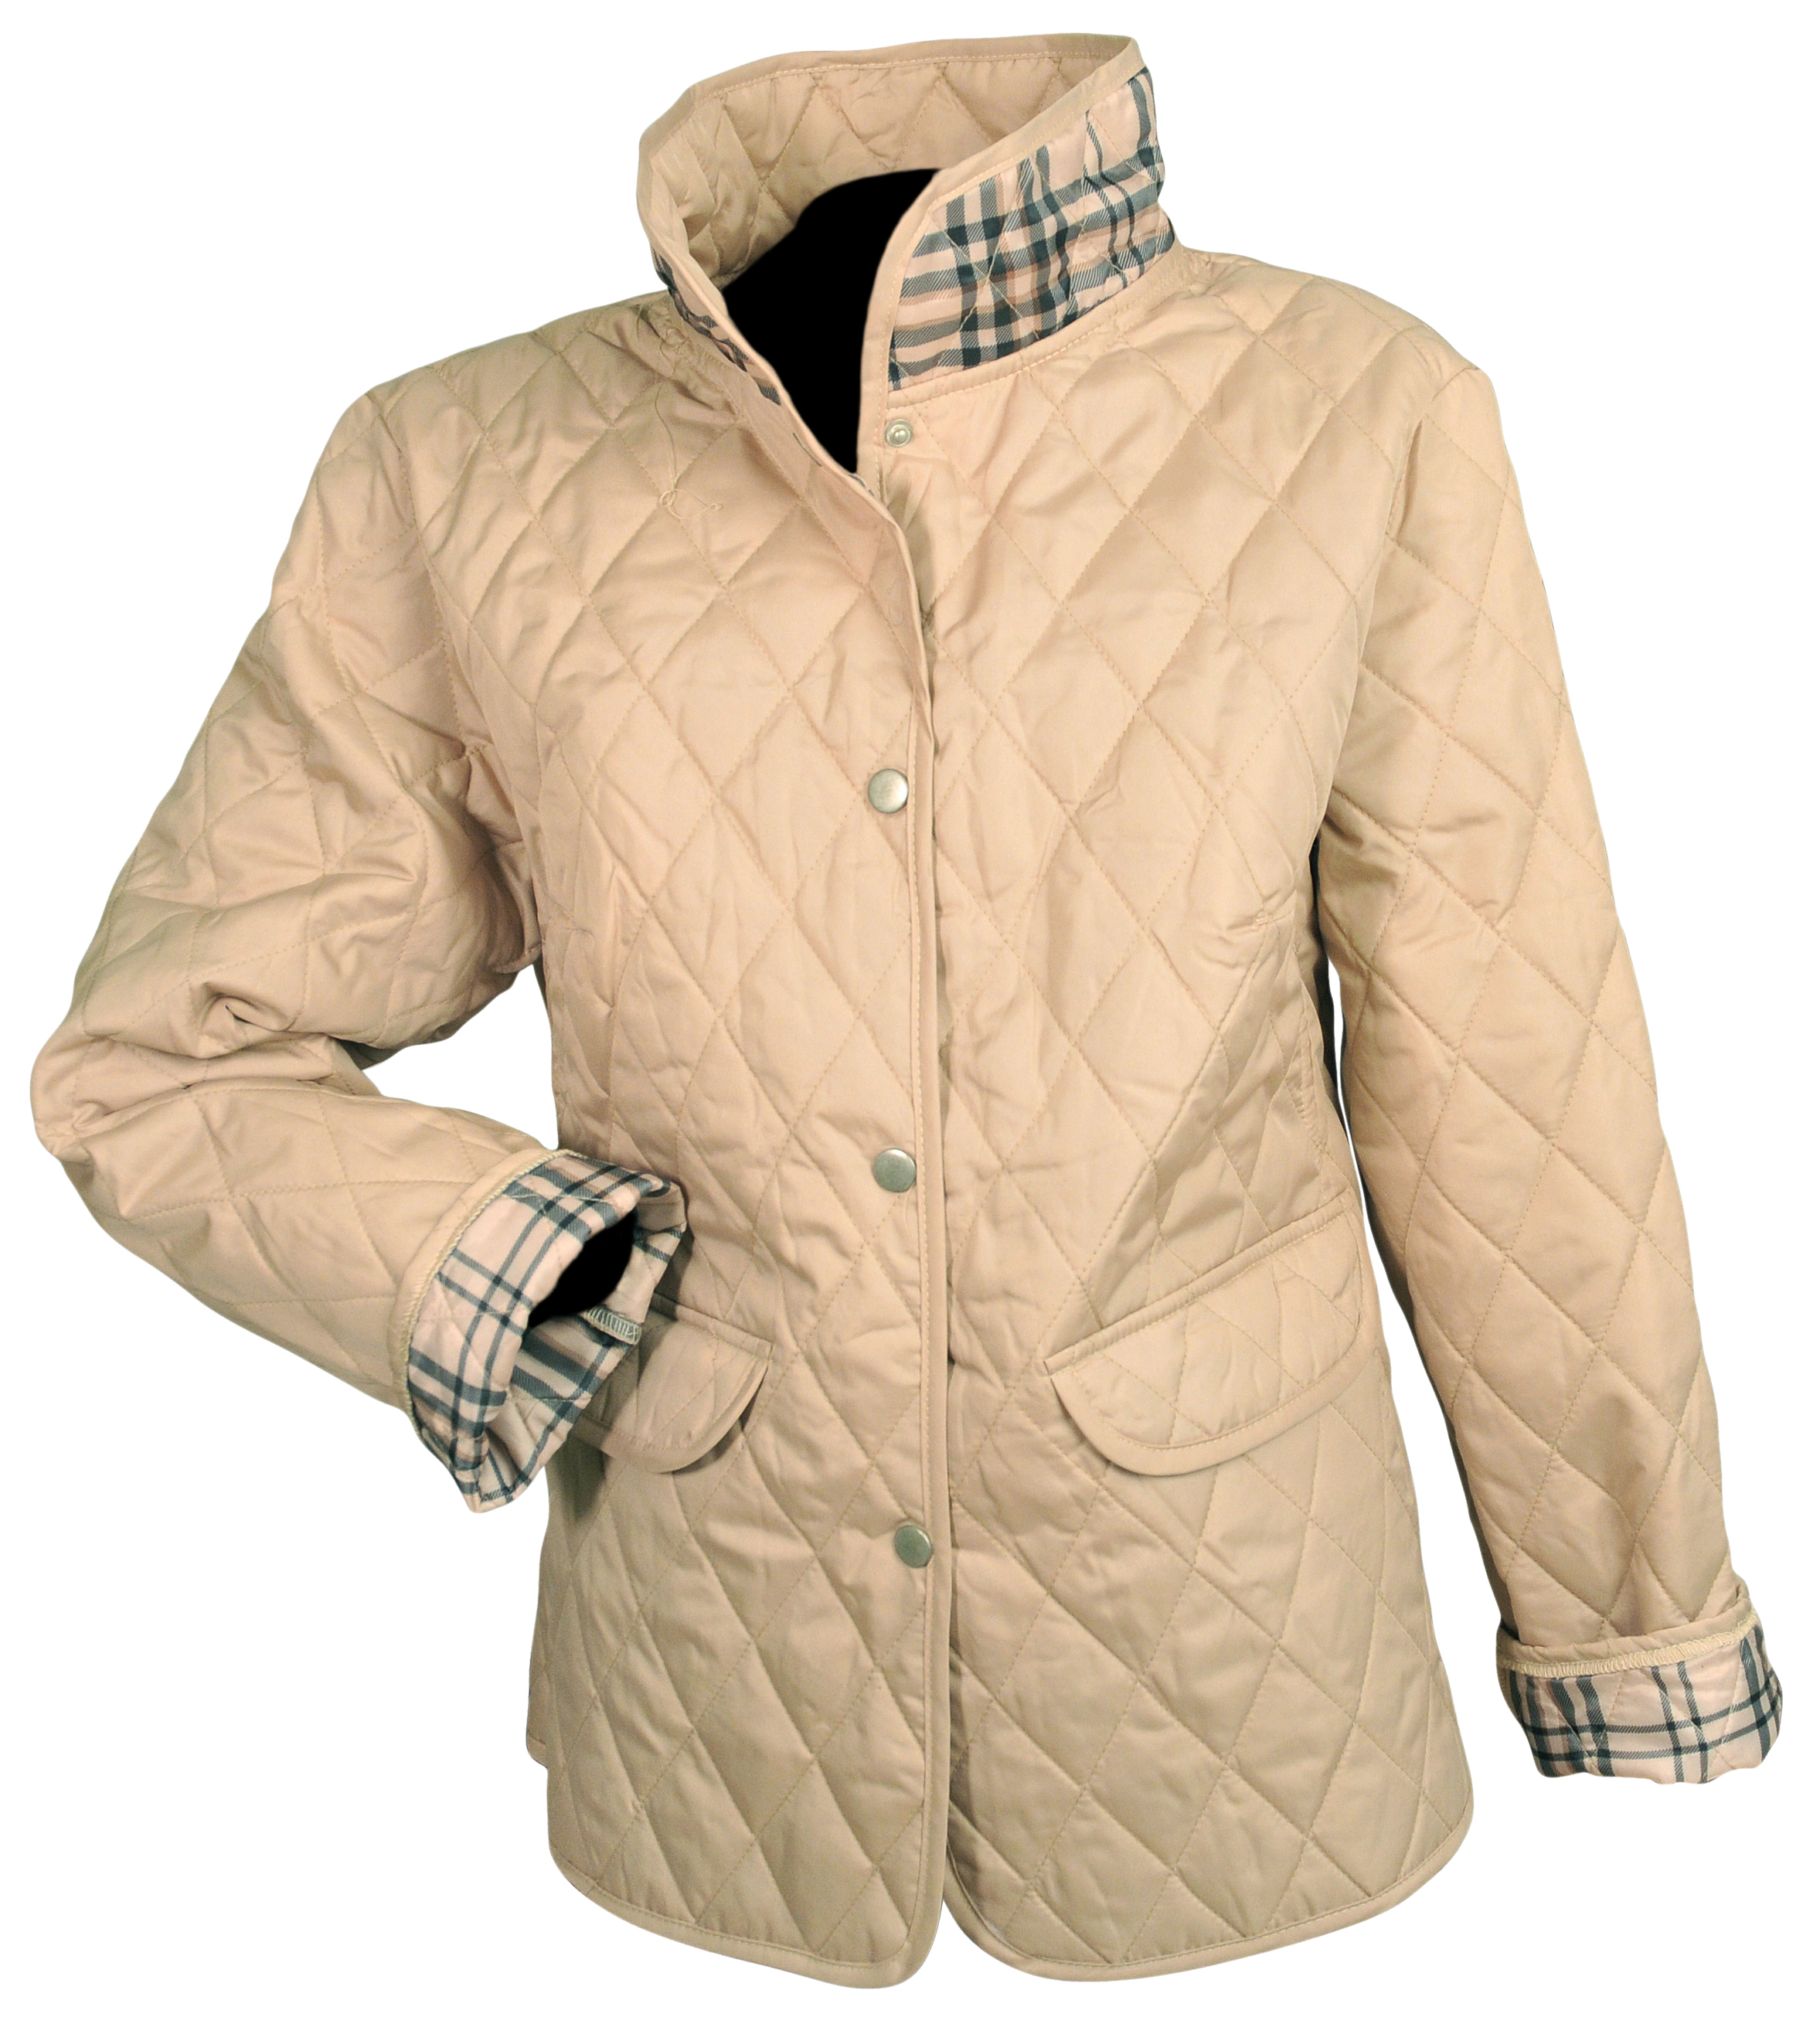 Jane Ashley Quilted Jacket with Tartan Plaid Trim